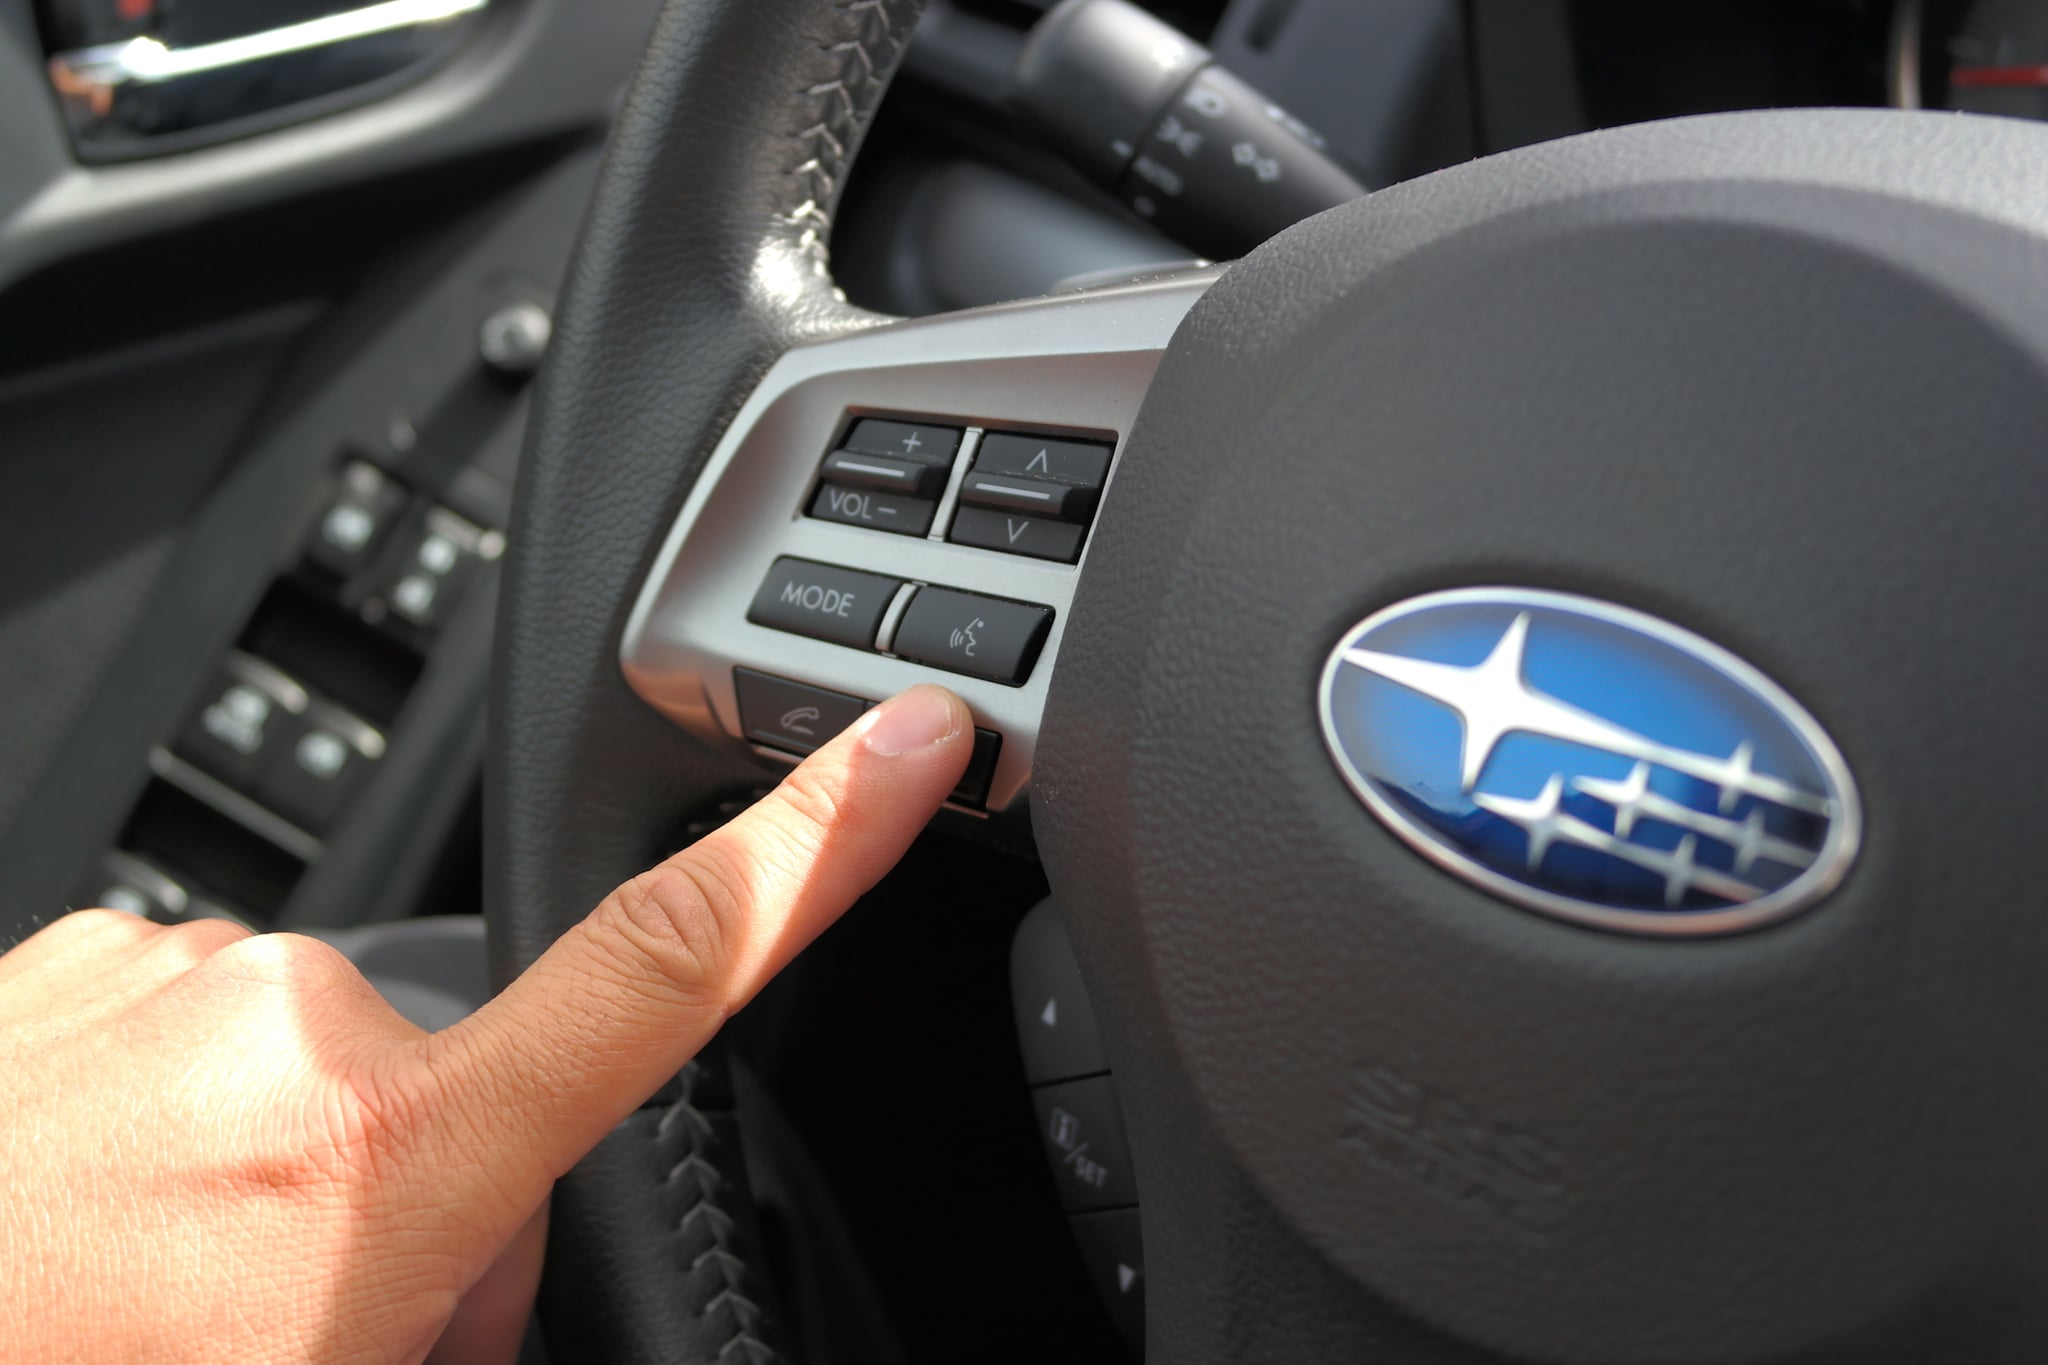 The steering wheel can also enable voice control.